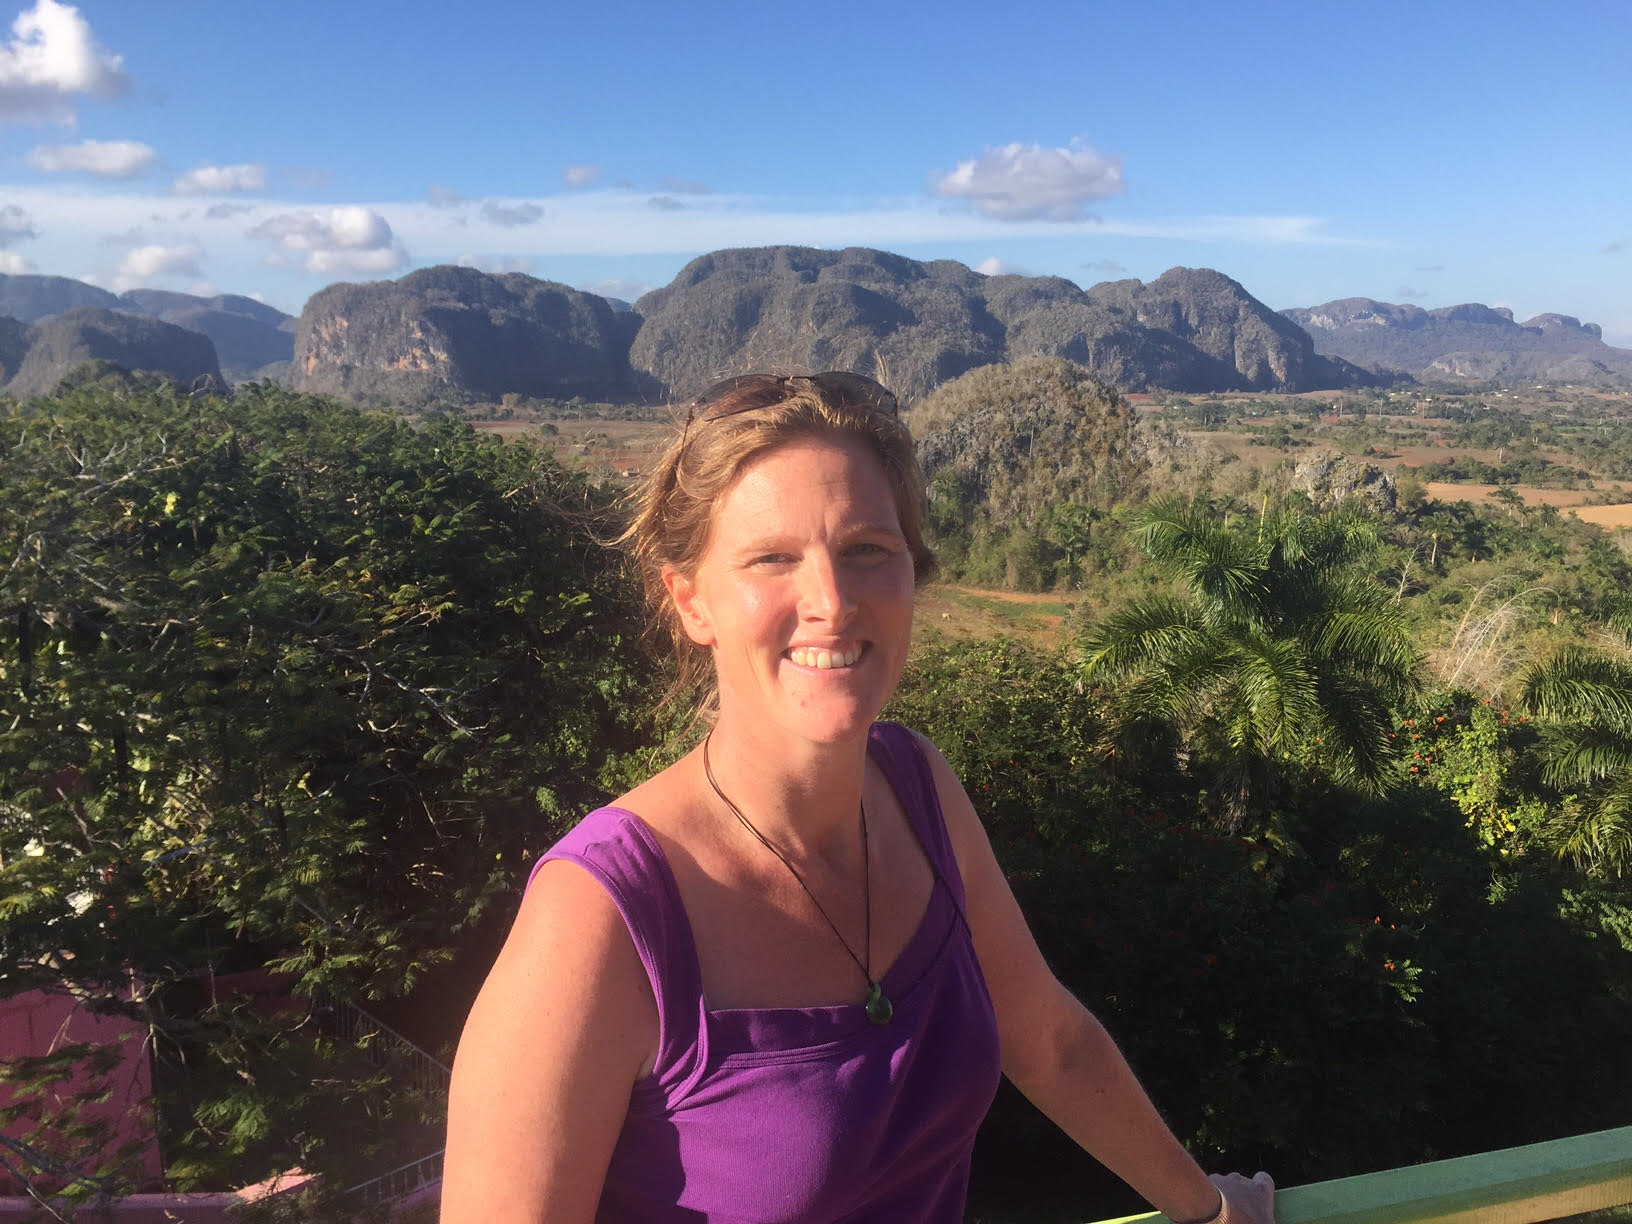 Eleanor Currier - Pictured in Cuba. She travels anywhere and everywhere. You can read about her adventures in Havana hereand in New York here.